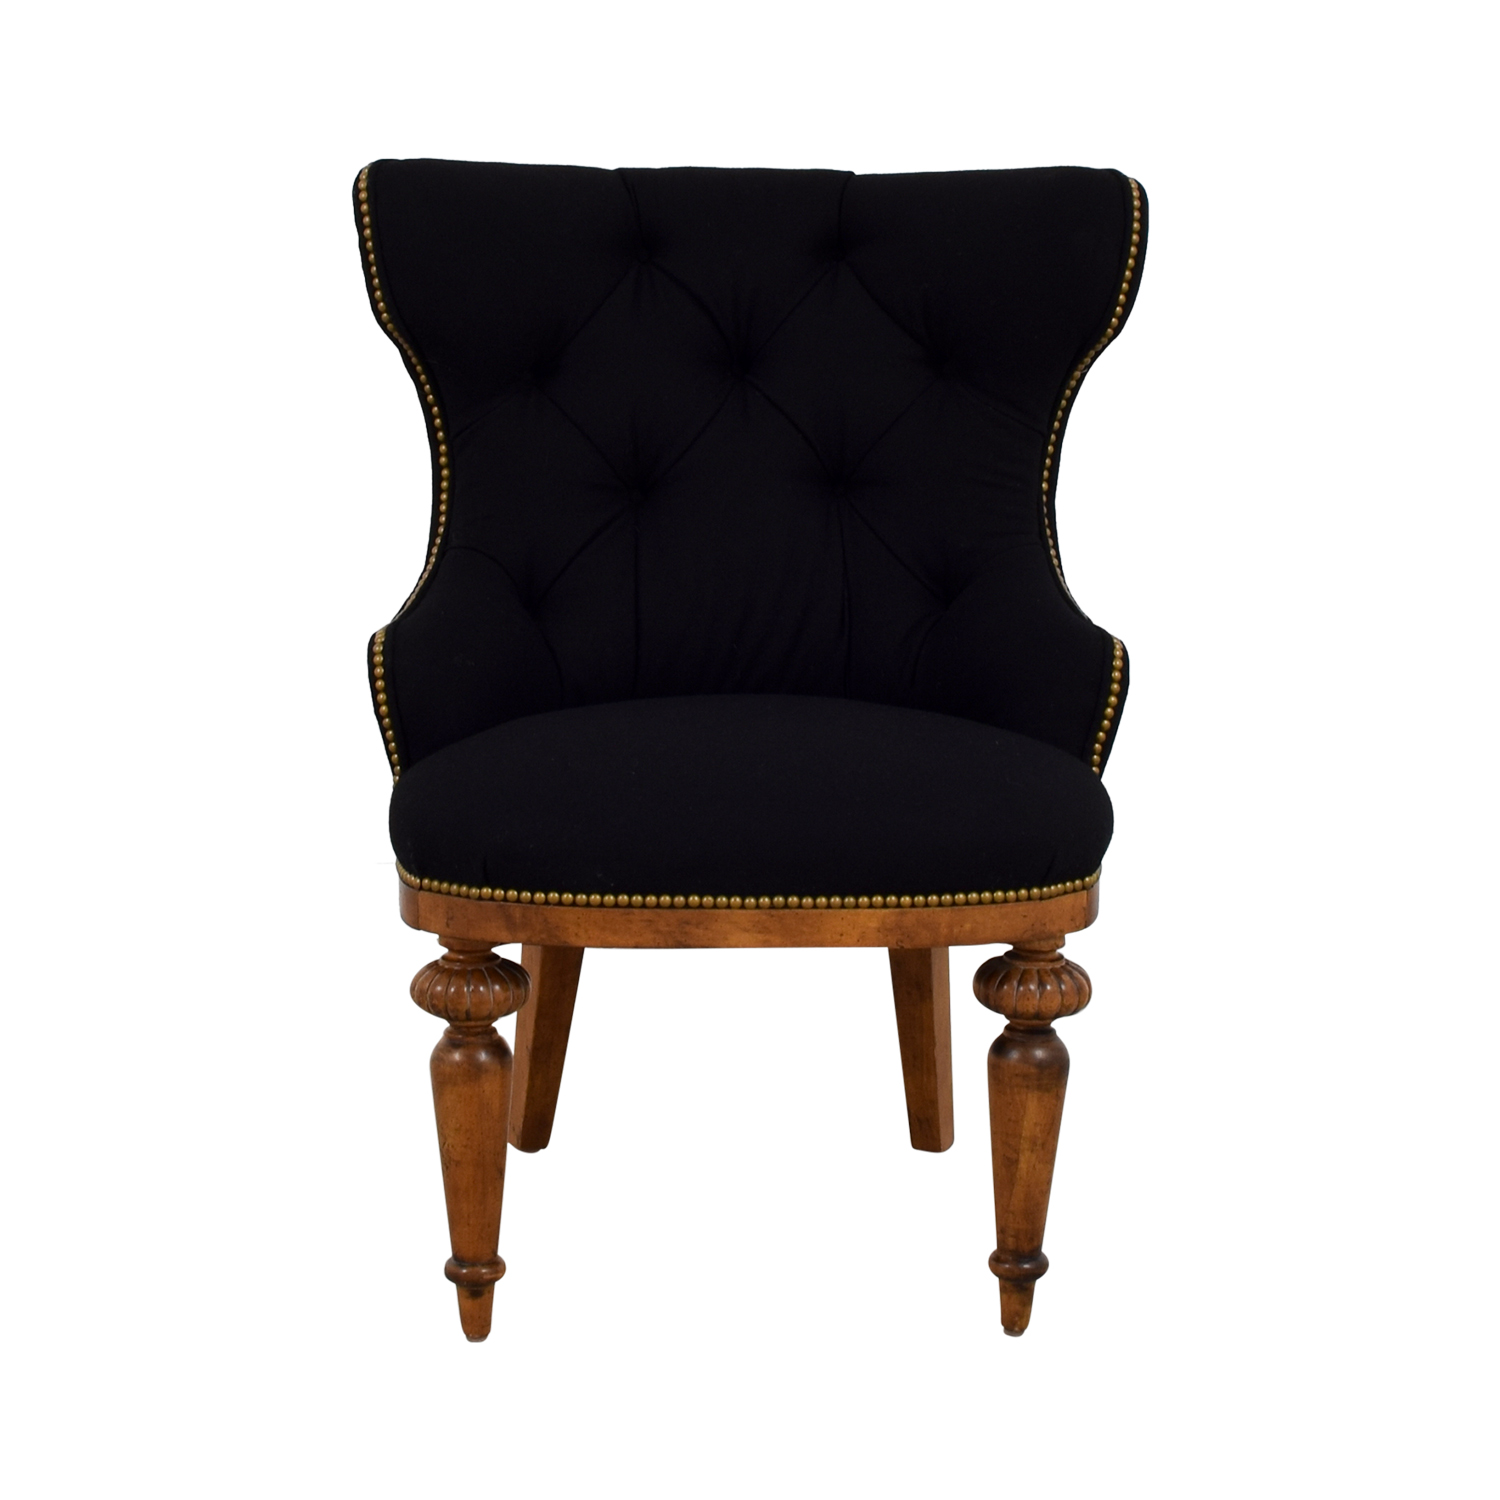 Furniture Masters Black Tufted Nailhead Accent Chair / Accent Chairs